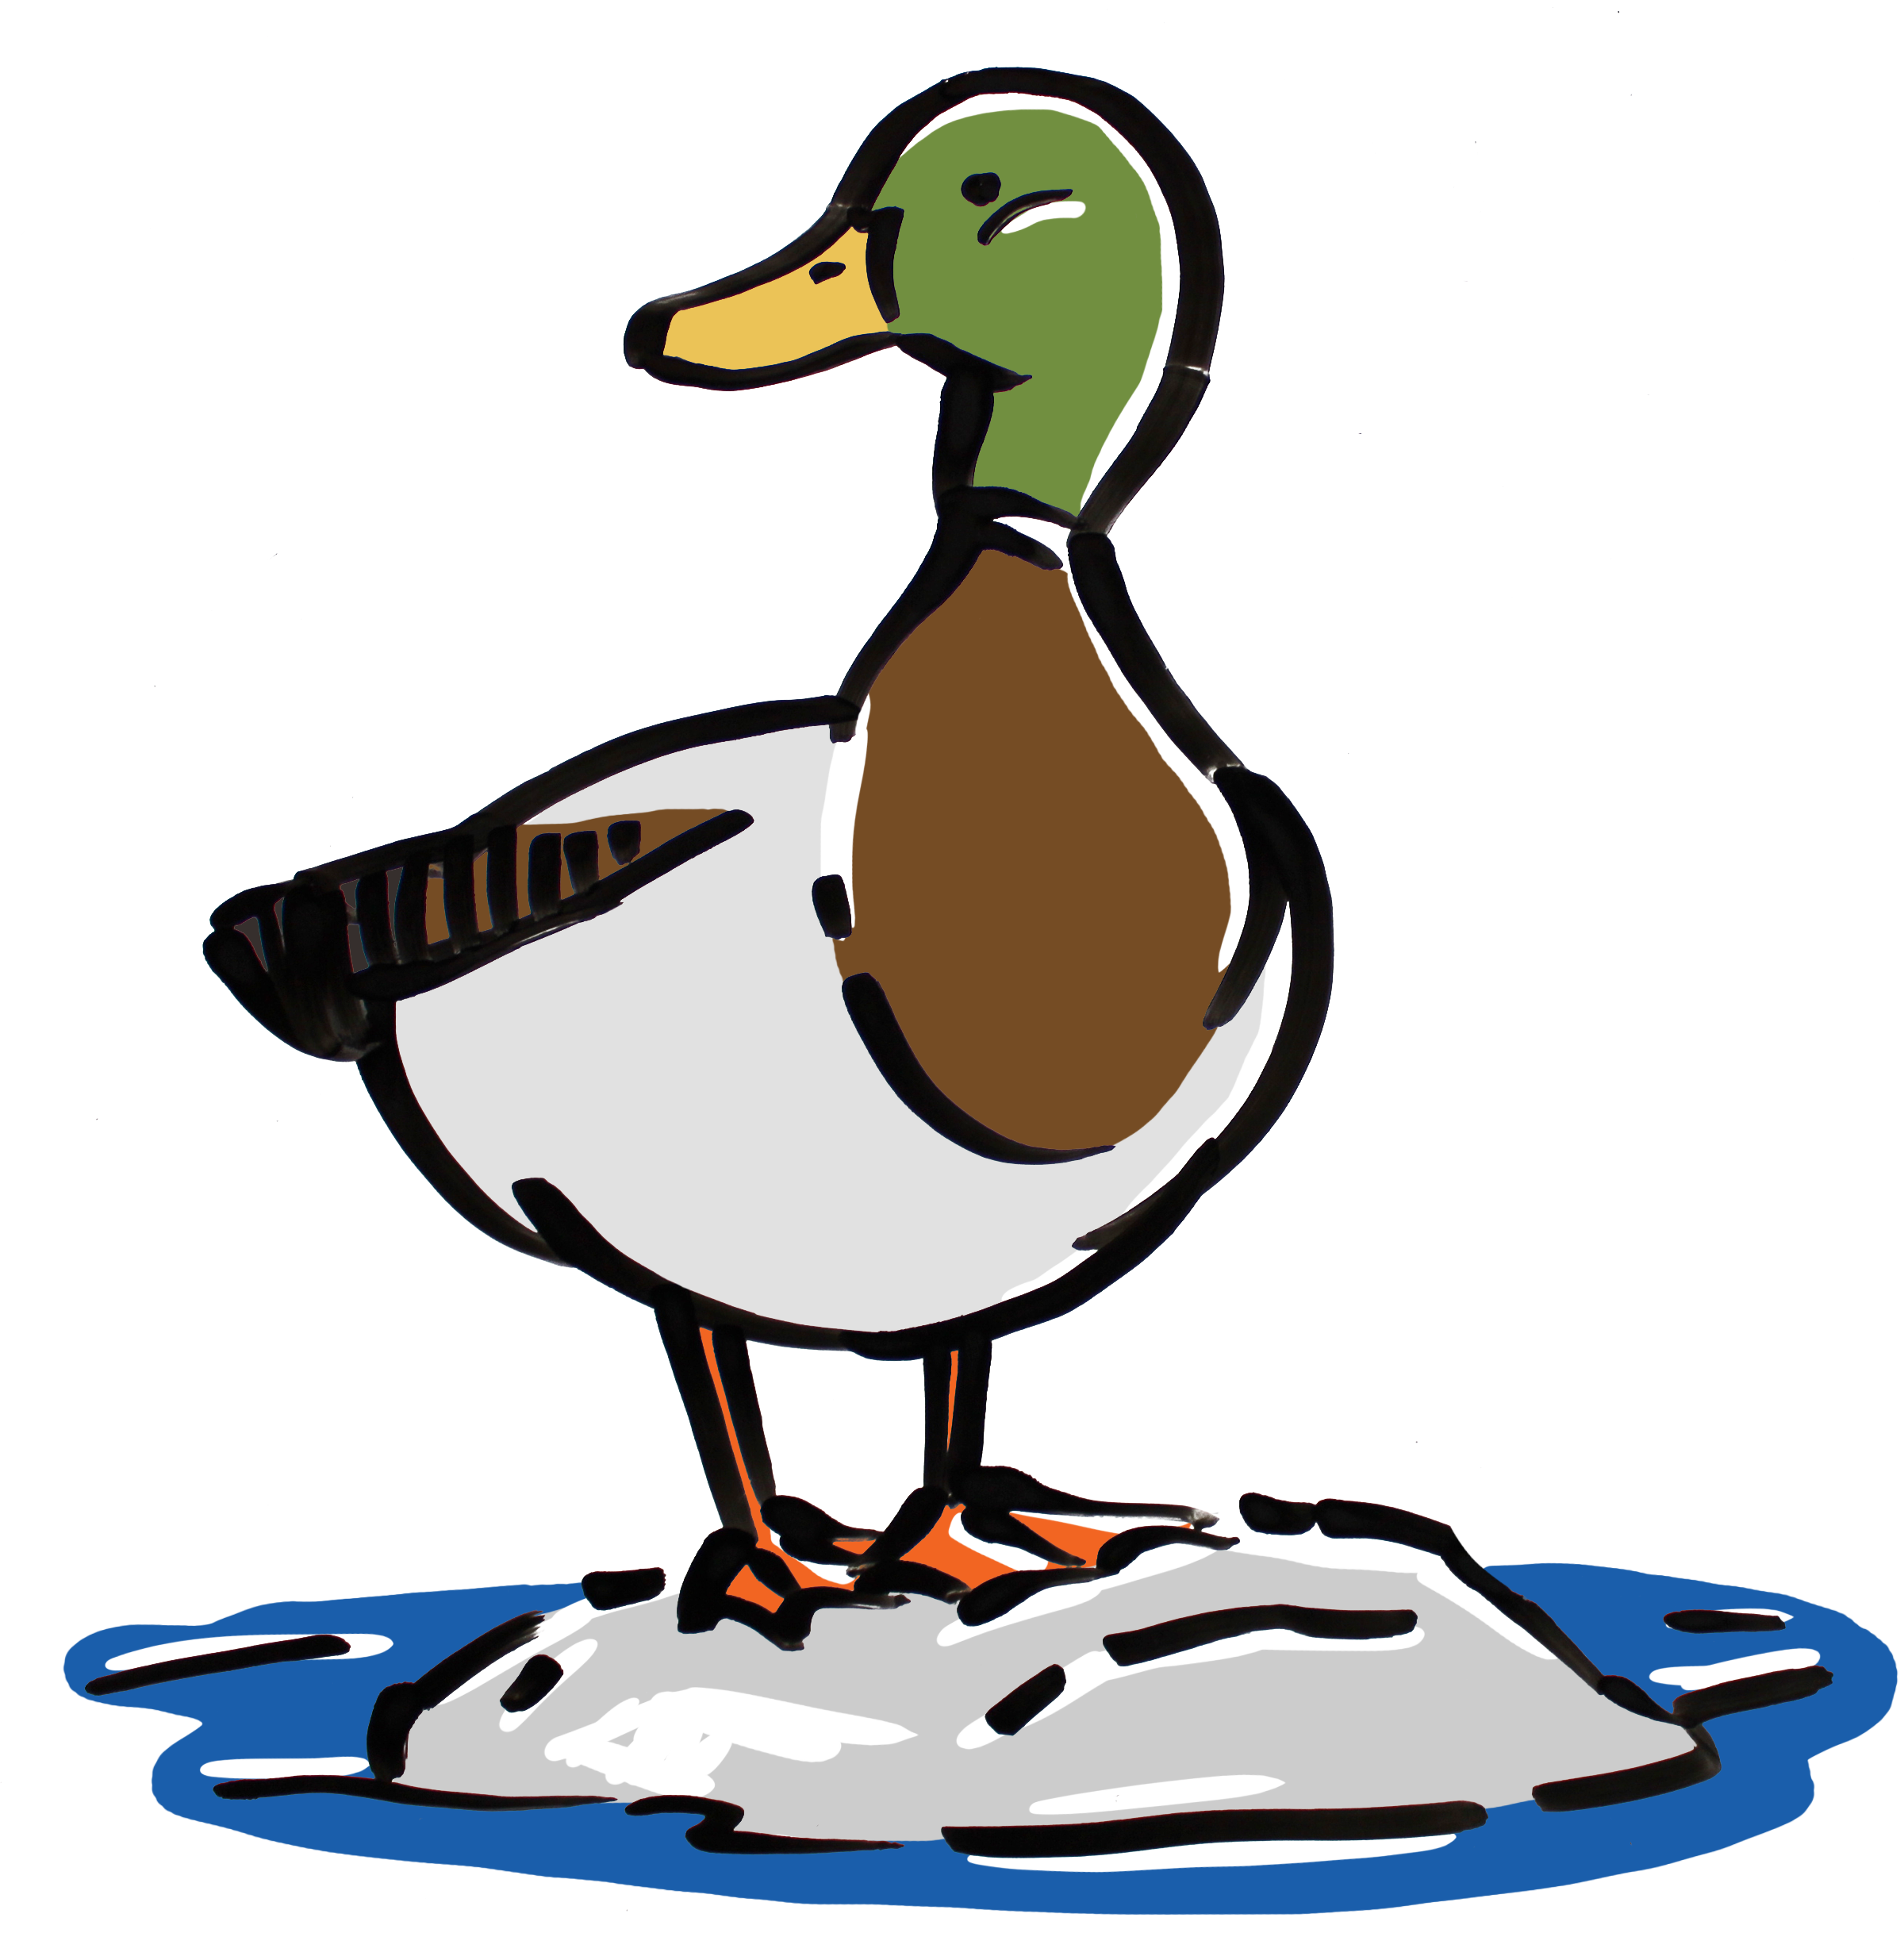 Mallard drawing animated. A day in the